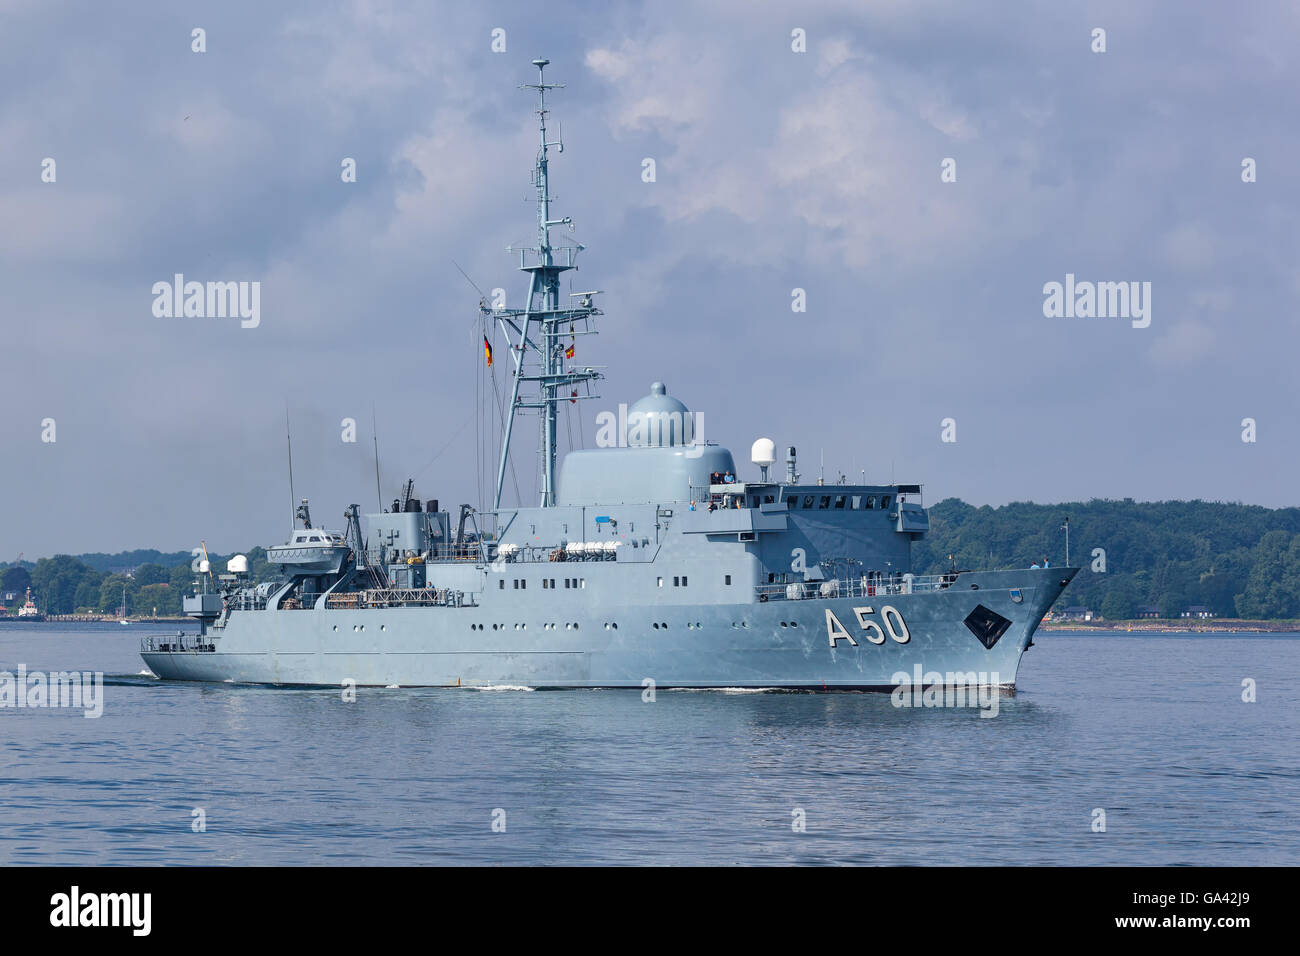 German Navy intelligence ship Alster (A 50) at Kiel, Germany. - Stock Image